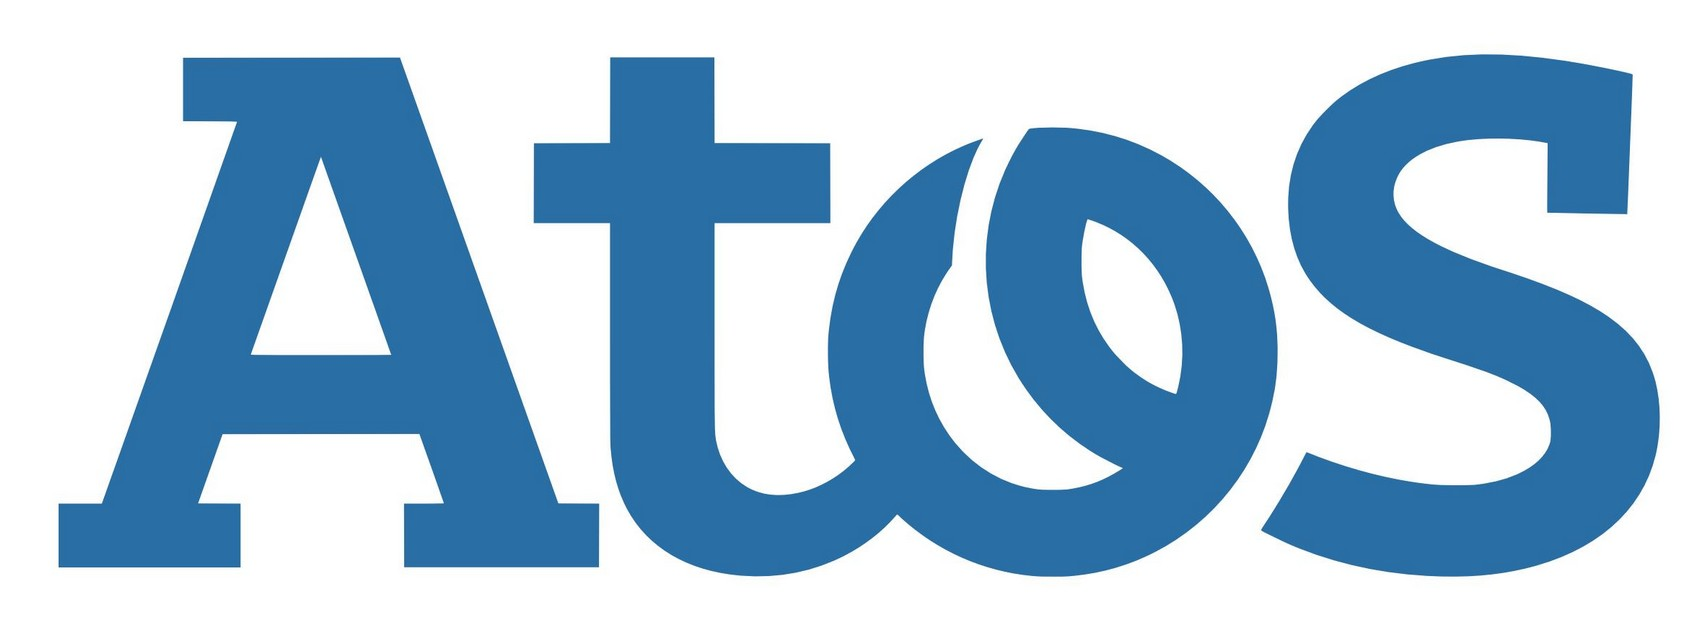 Atos logo download for free -